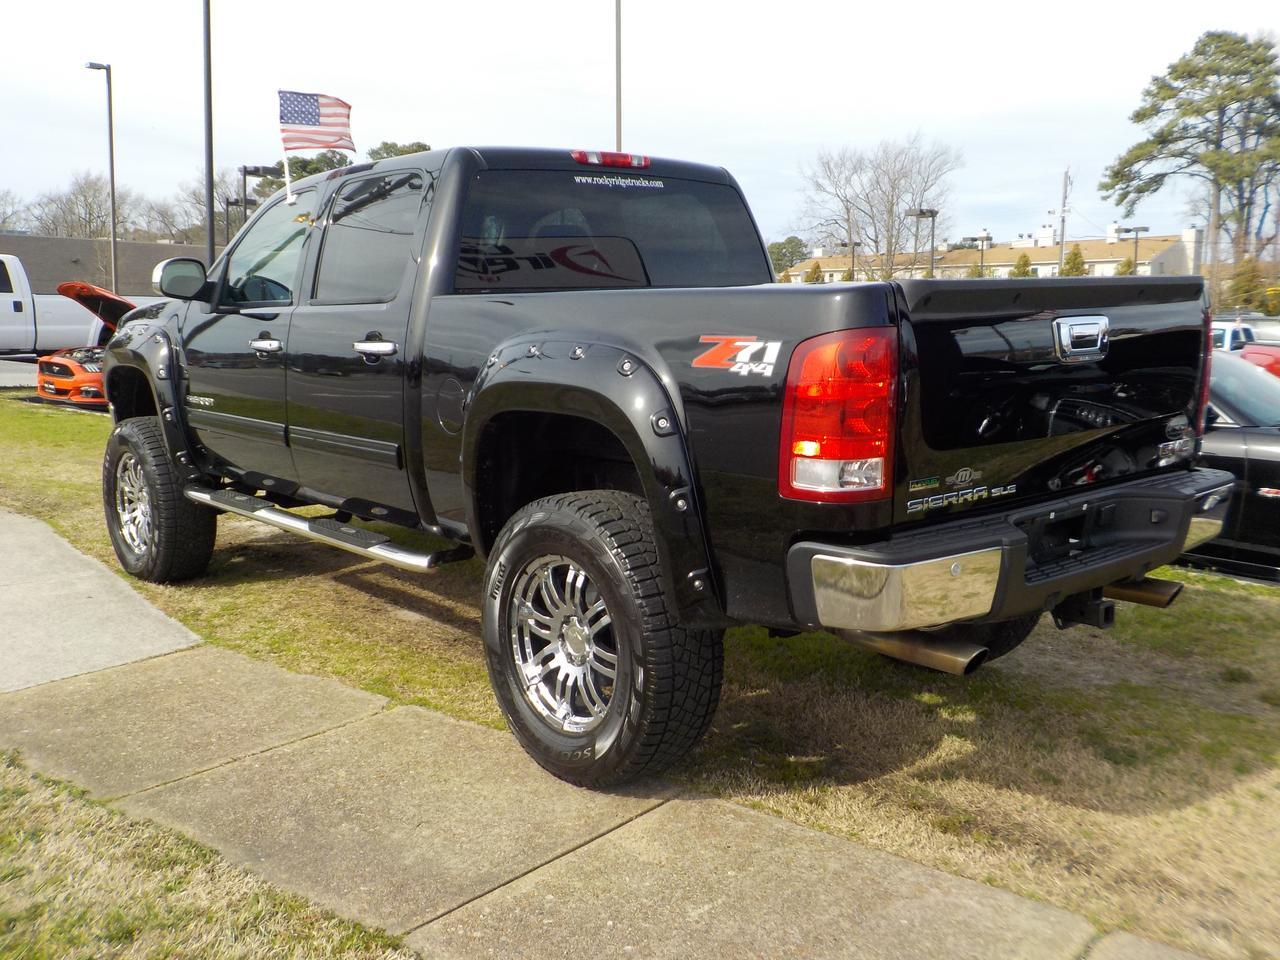 2011 GMC SIERRA SLT Z71 4X4, WARRANTY, LEATHER ,LIFTED, PARKING SENSORS, RUNNING BOARDS, REMOTE START, FENDER FLARES Virginia Beach VA